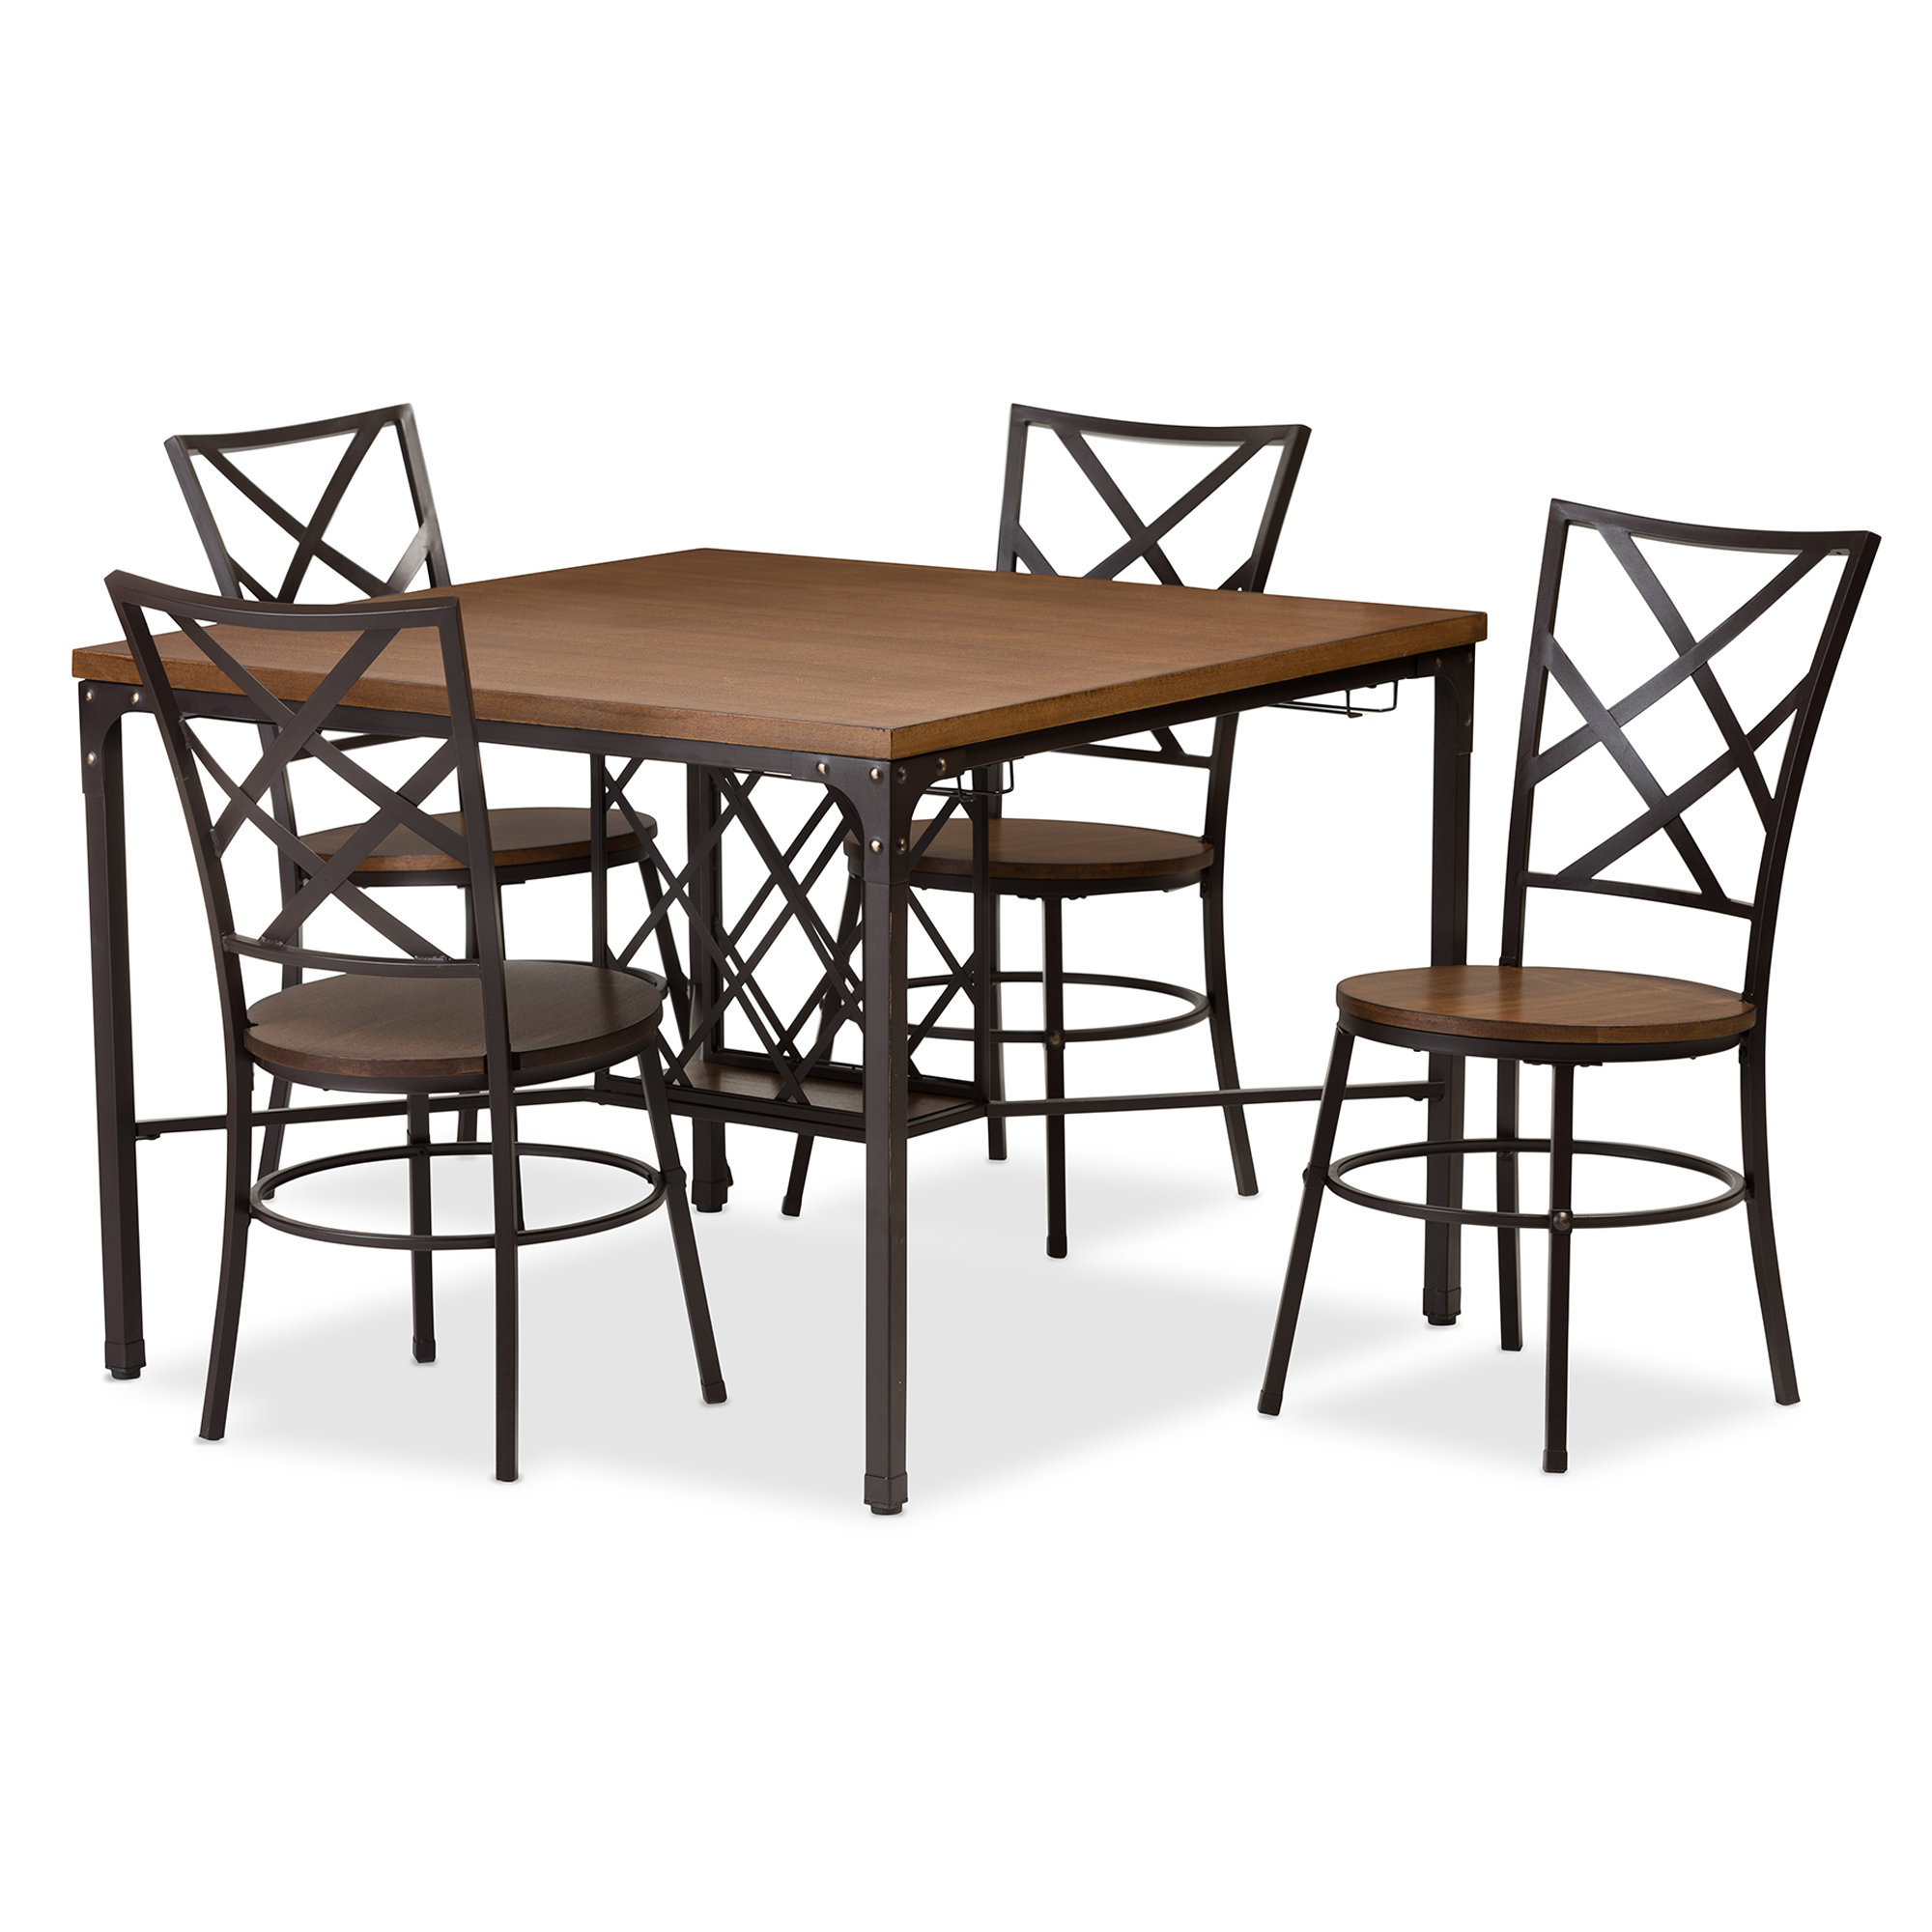 Wayfair Intended For Ganya 5 Piece Dining Sets (View 6 of 25)